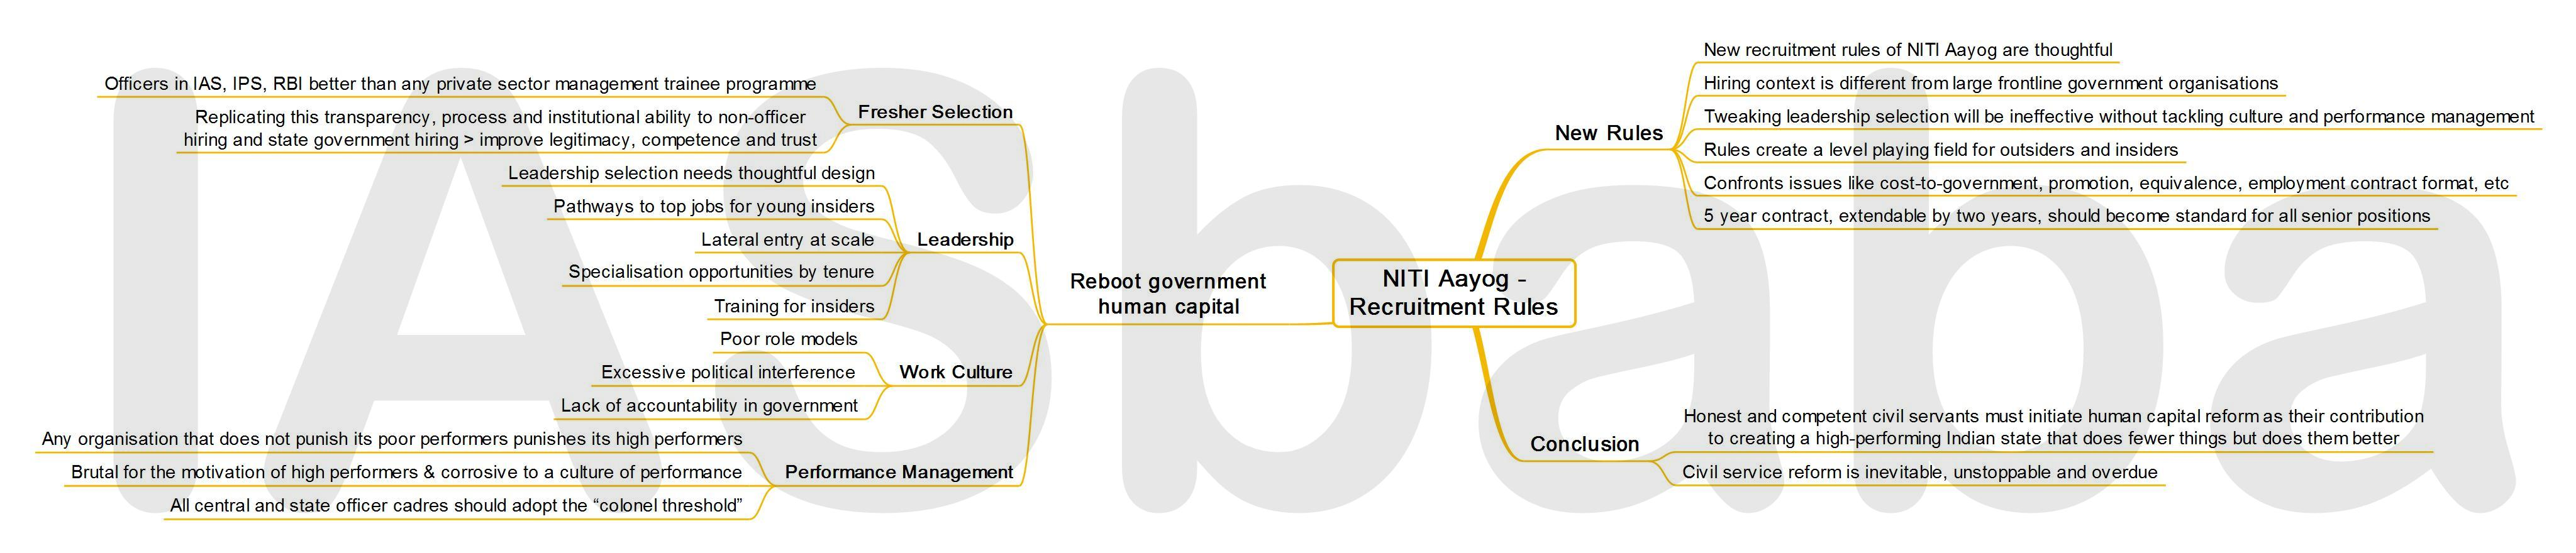 IASbaba's MINDMAP : Issue - NITI Aayog - Recruitment Rules